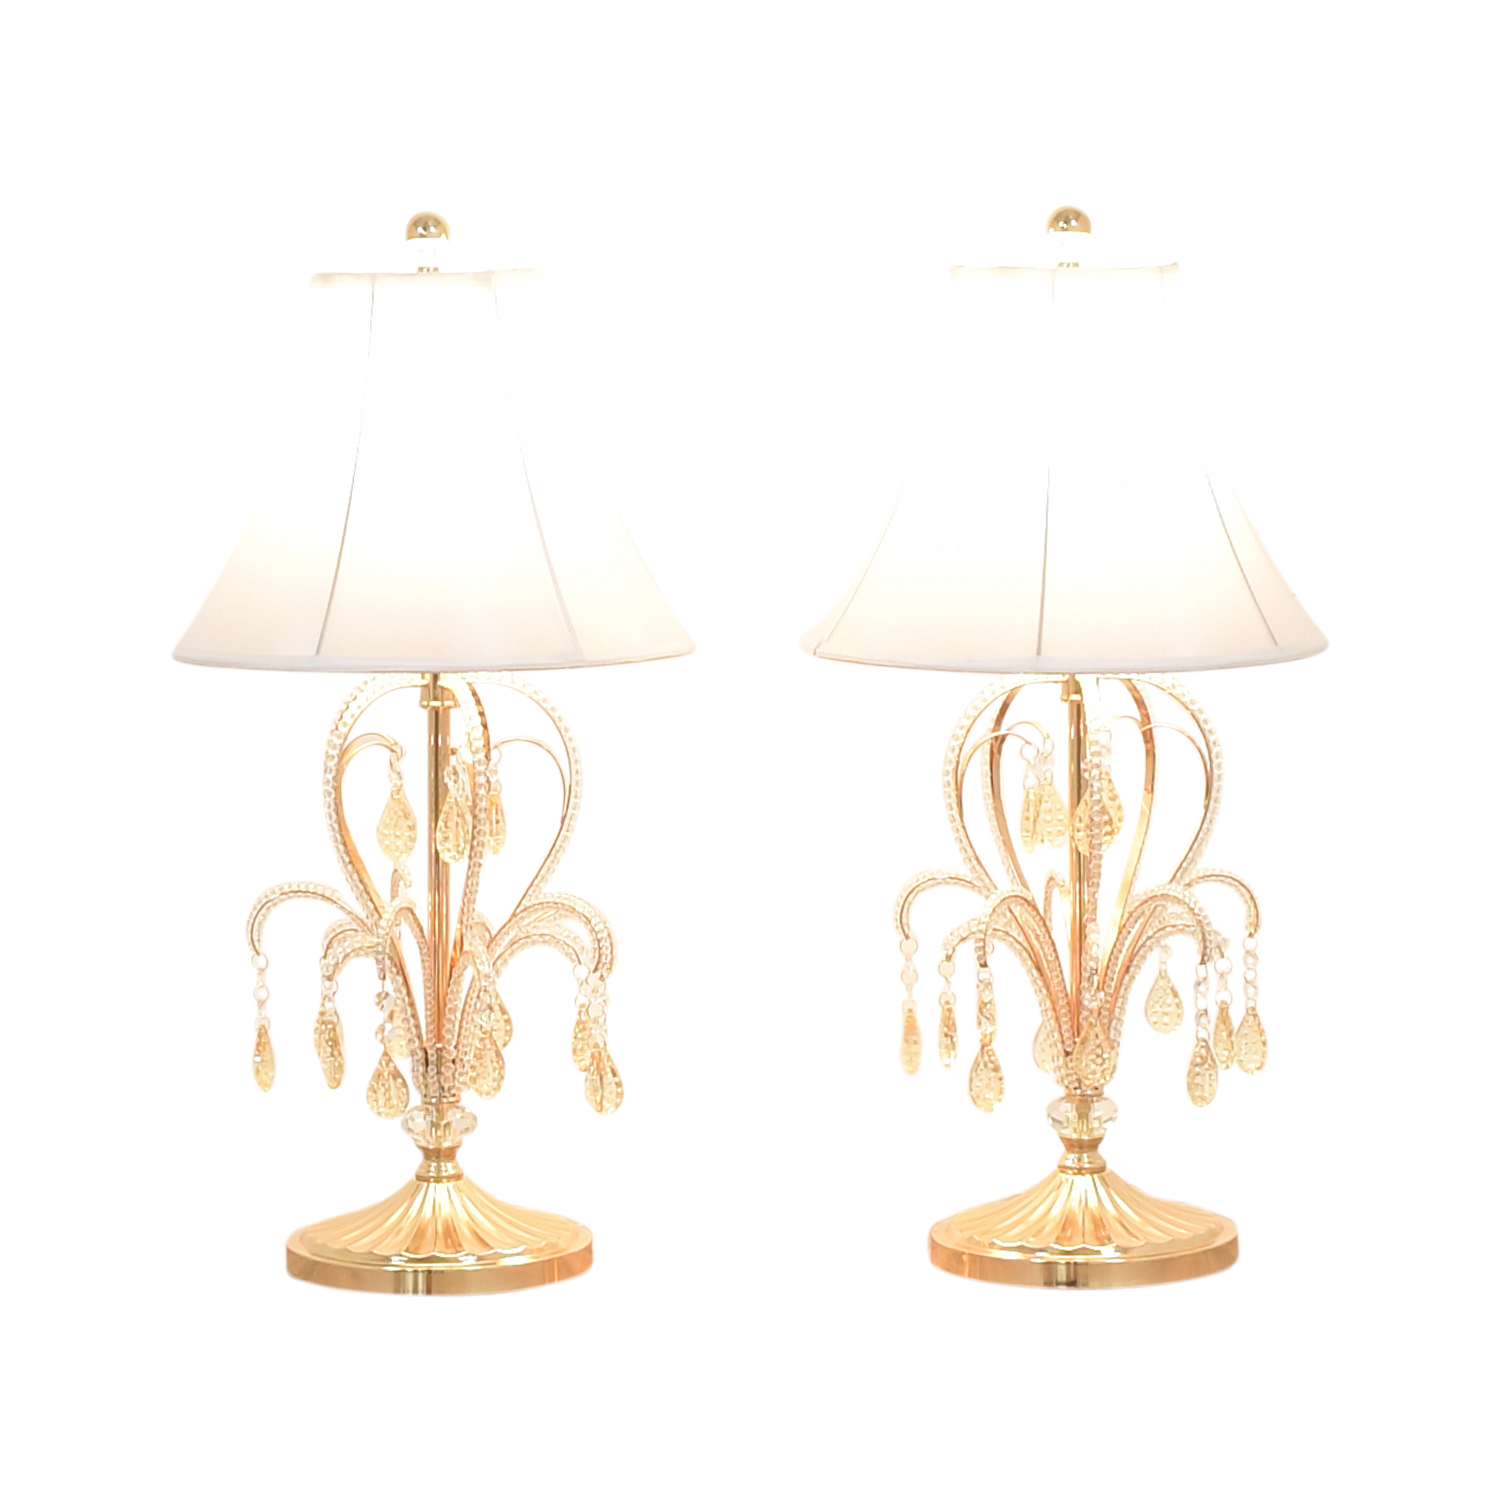 Chandelier Style Table Lamps for sale